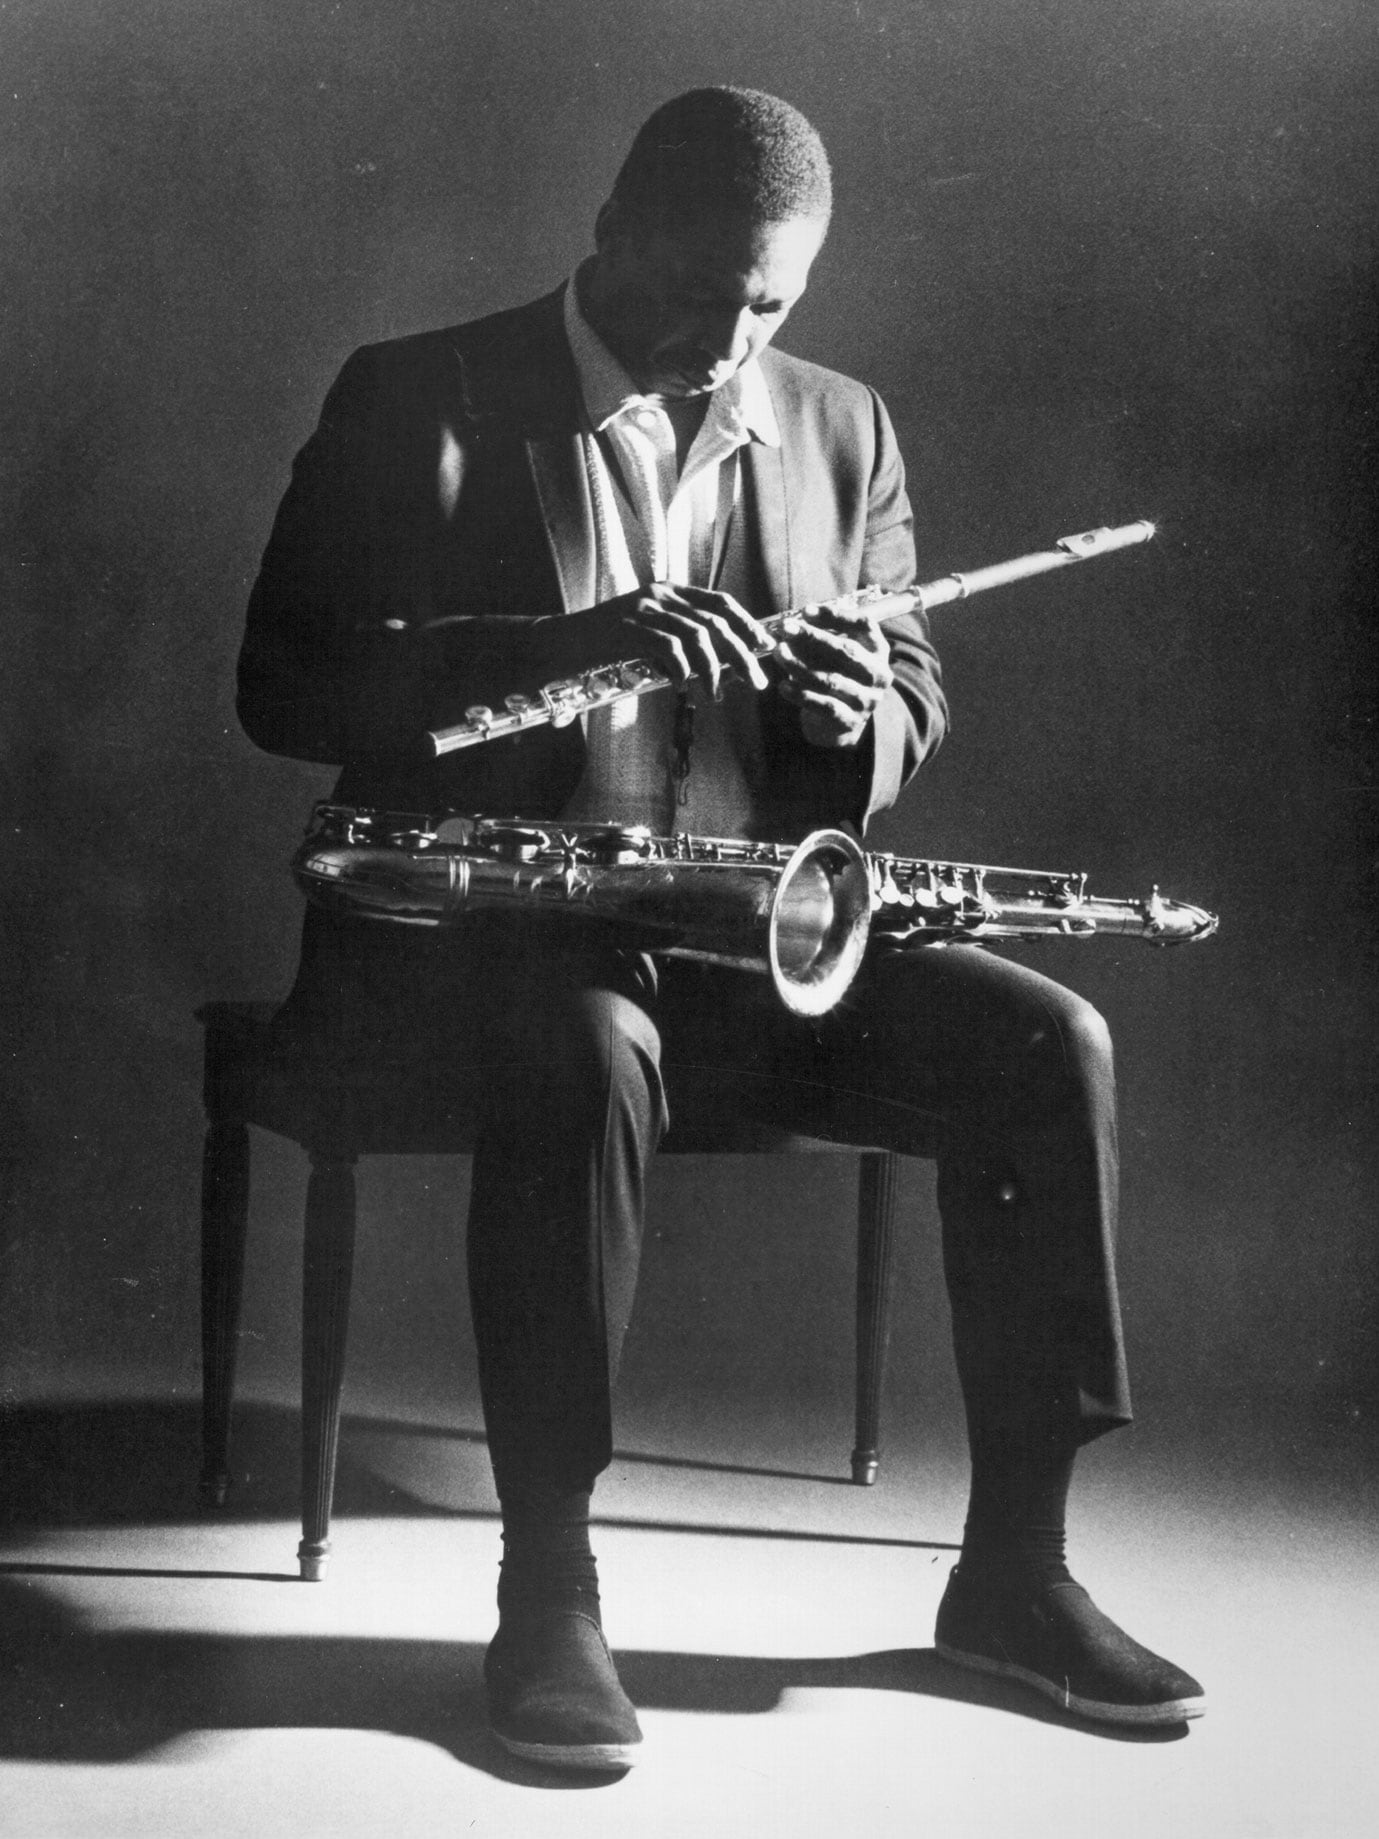 A man sitting on a chair holding a flute and a saxophone.